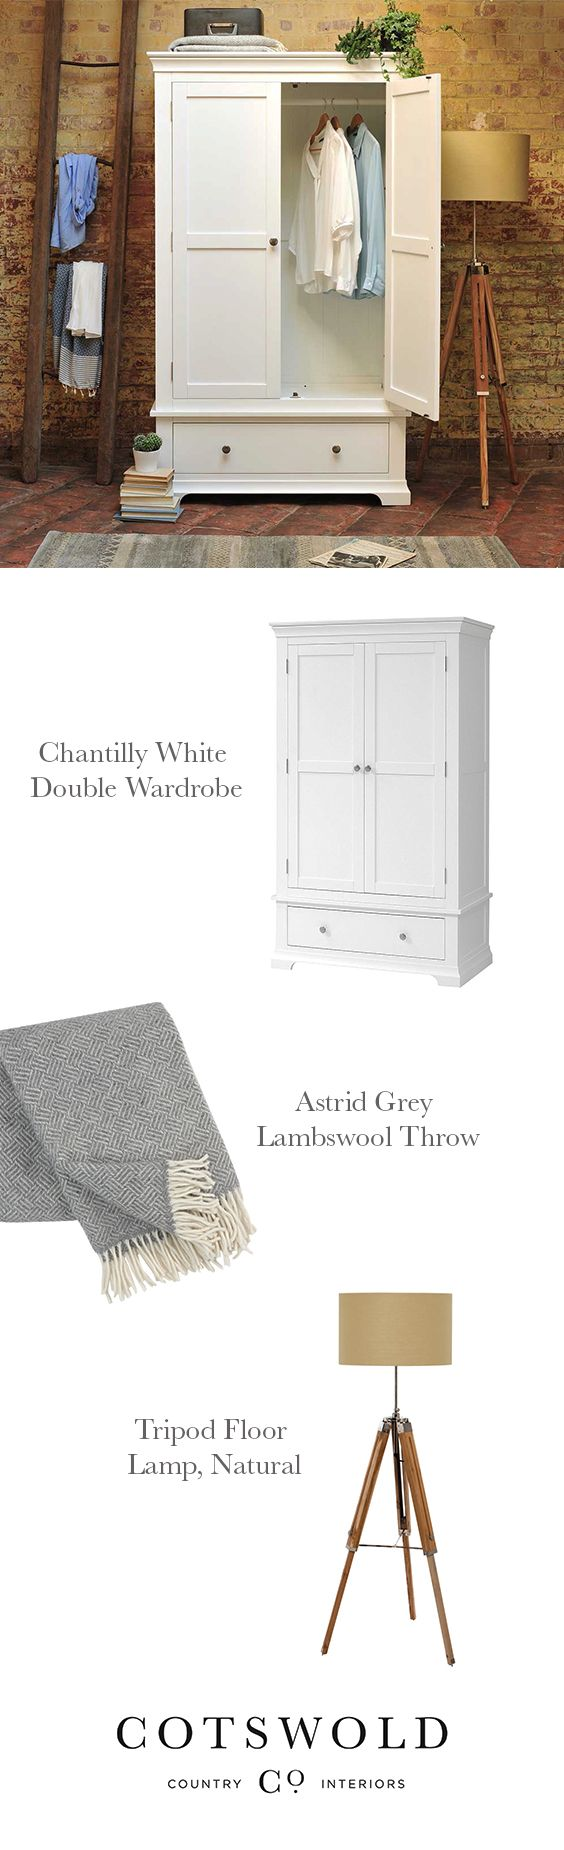 Modern Country Style Interiors from The Cotswold Company | Free Delivery | Free Returns.  Chantilly White Double Wardrobe, Bedroom Interiors, Bedroom Furniture, Bedroom Decor, Modern Country Style, Country Style, Rustic Style.